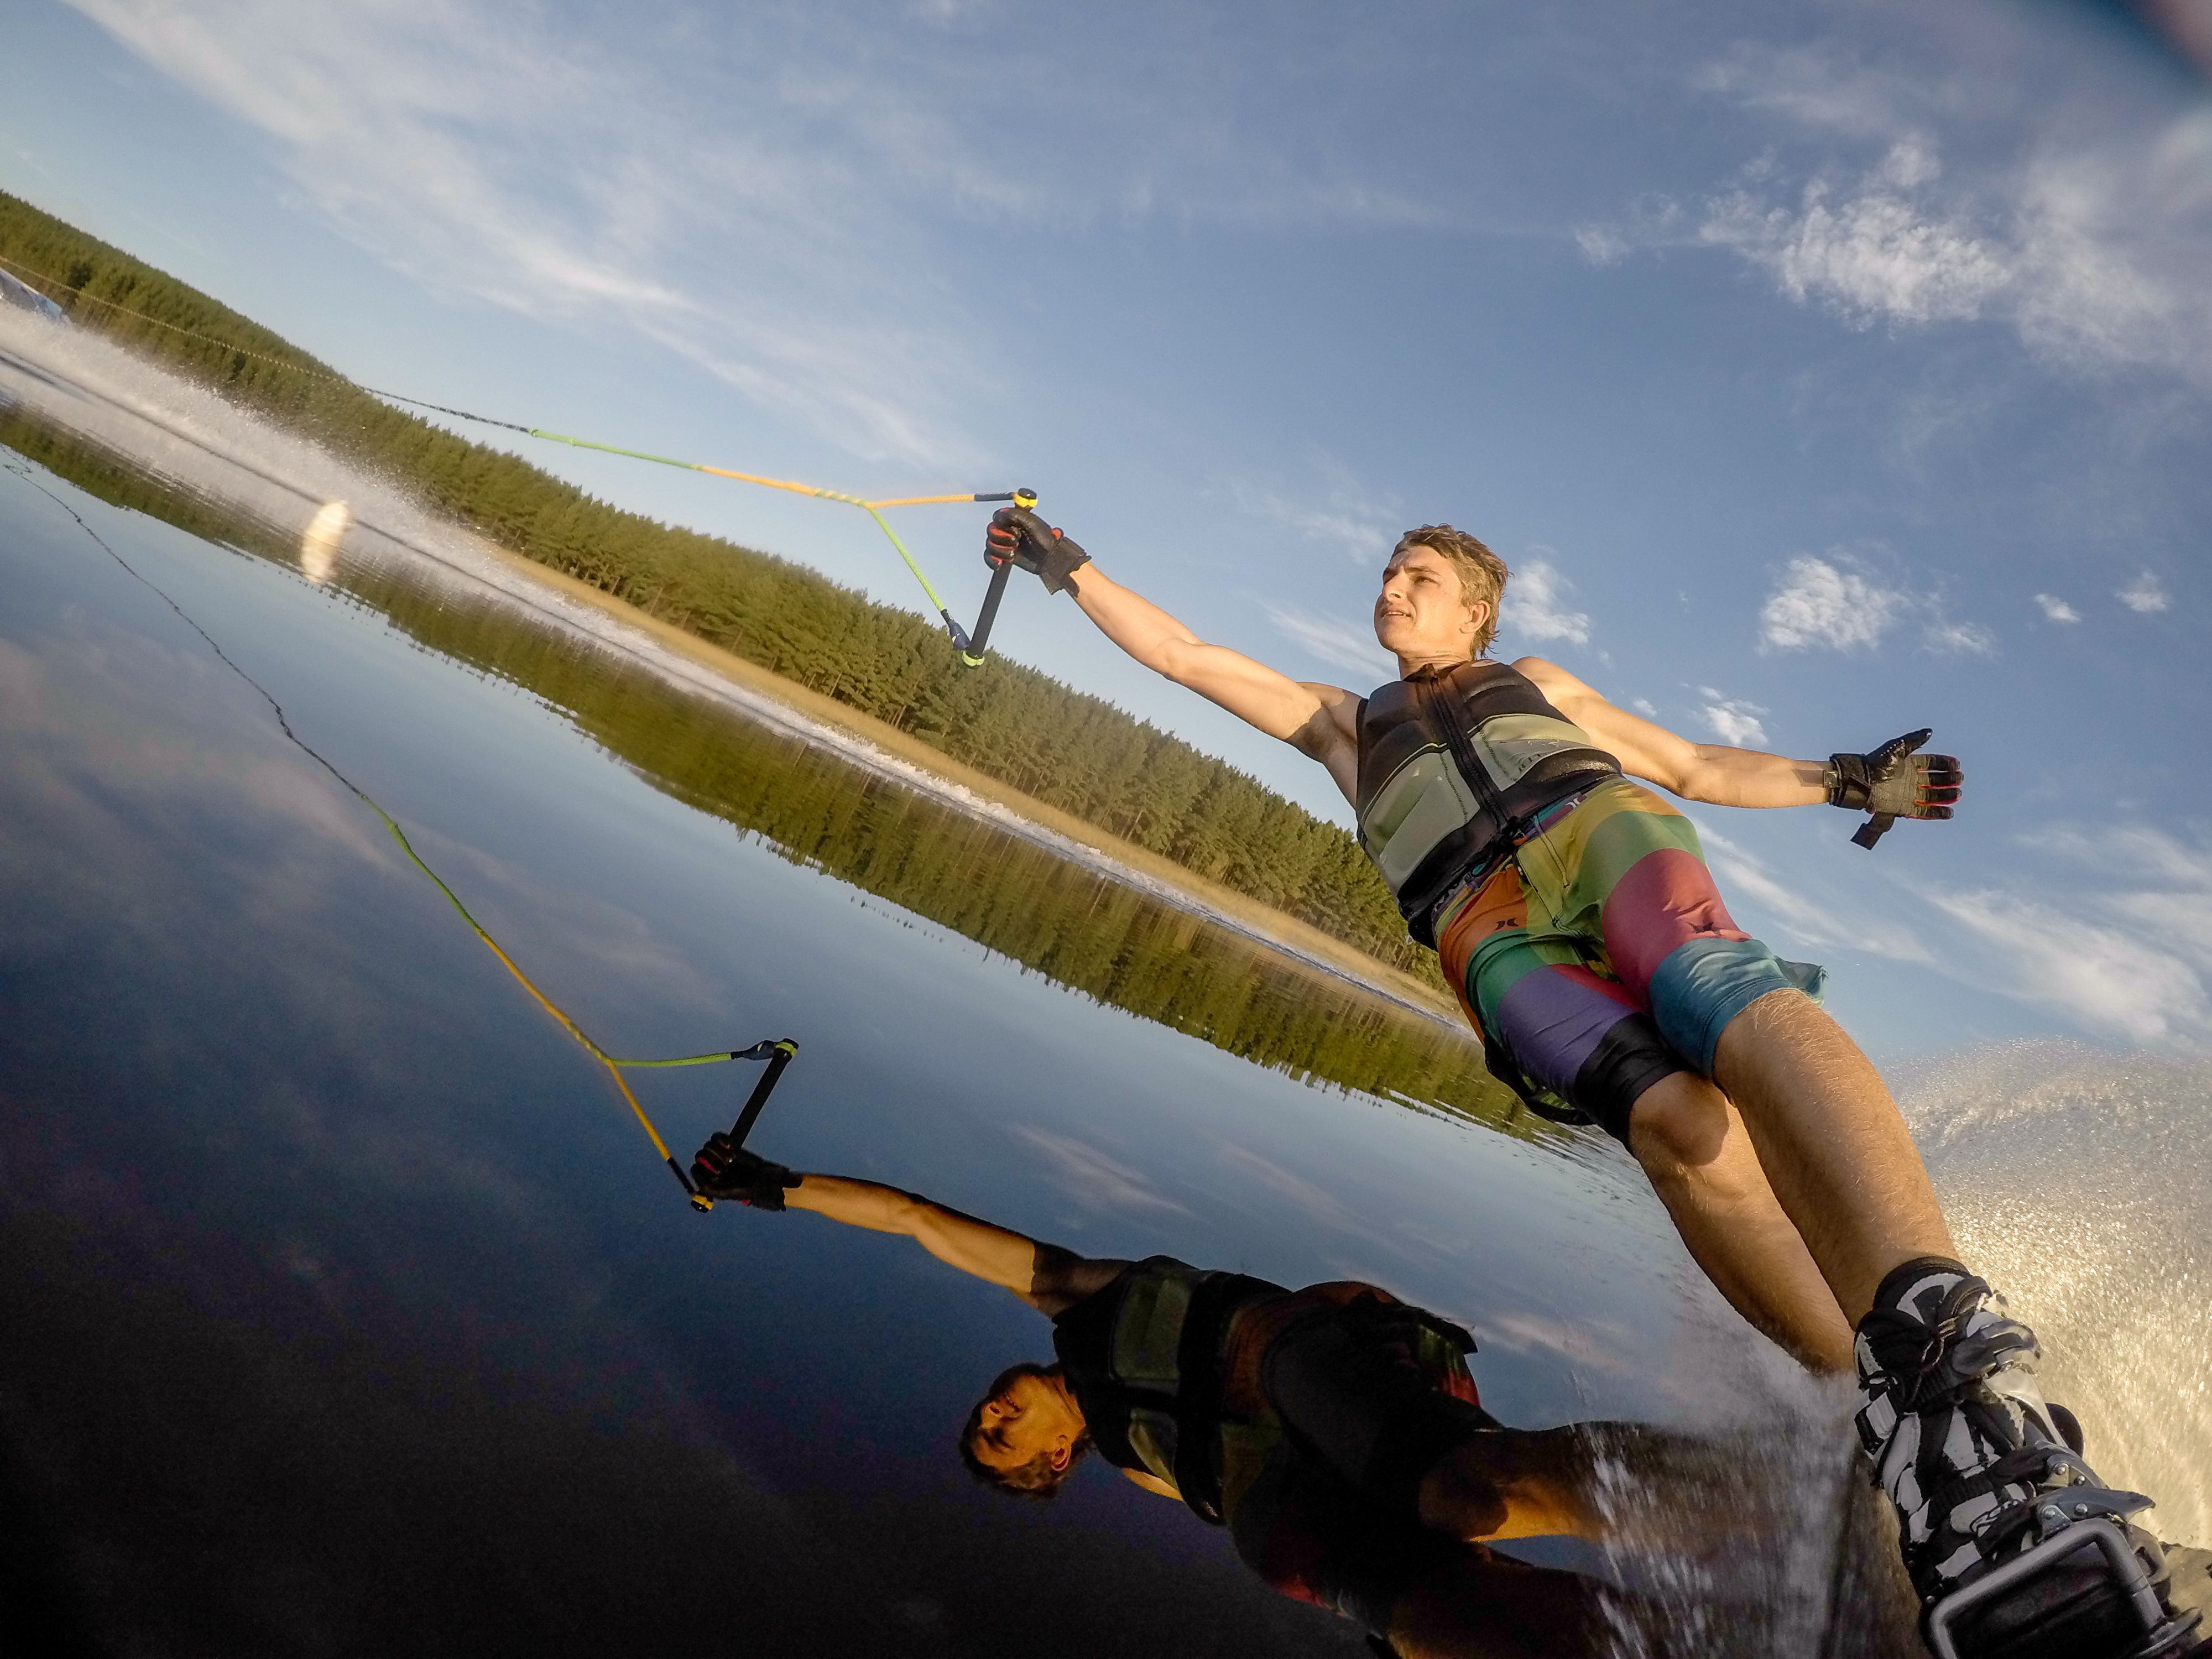 Best Lake Life Images On Pinterest Paddle Photos And Skydiving - 33 incredible photos taken gopro